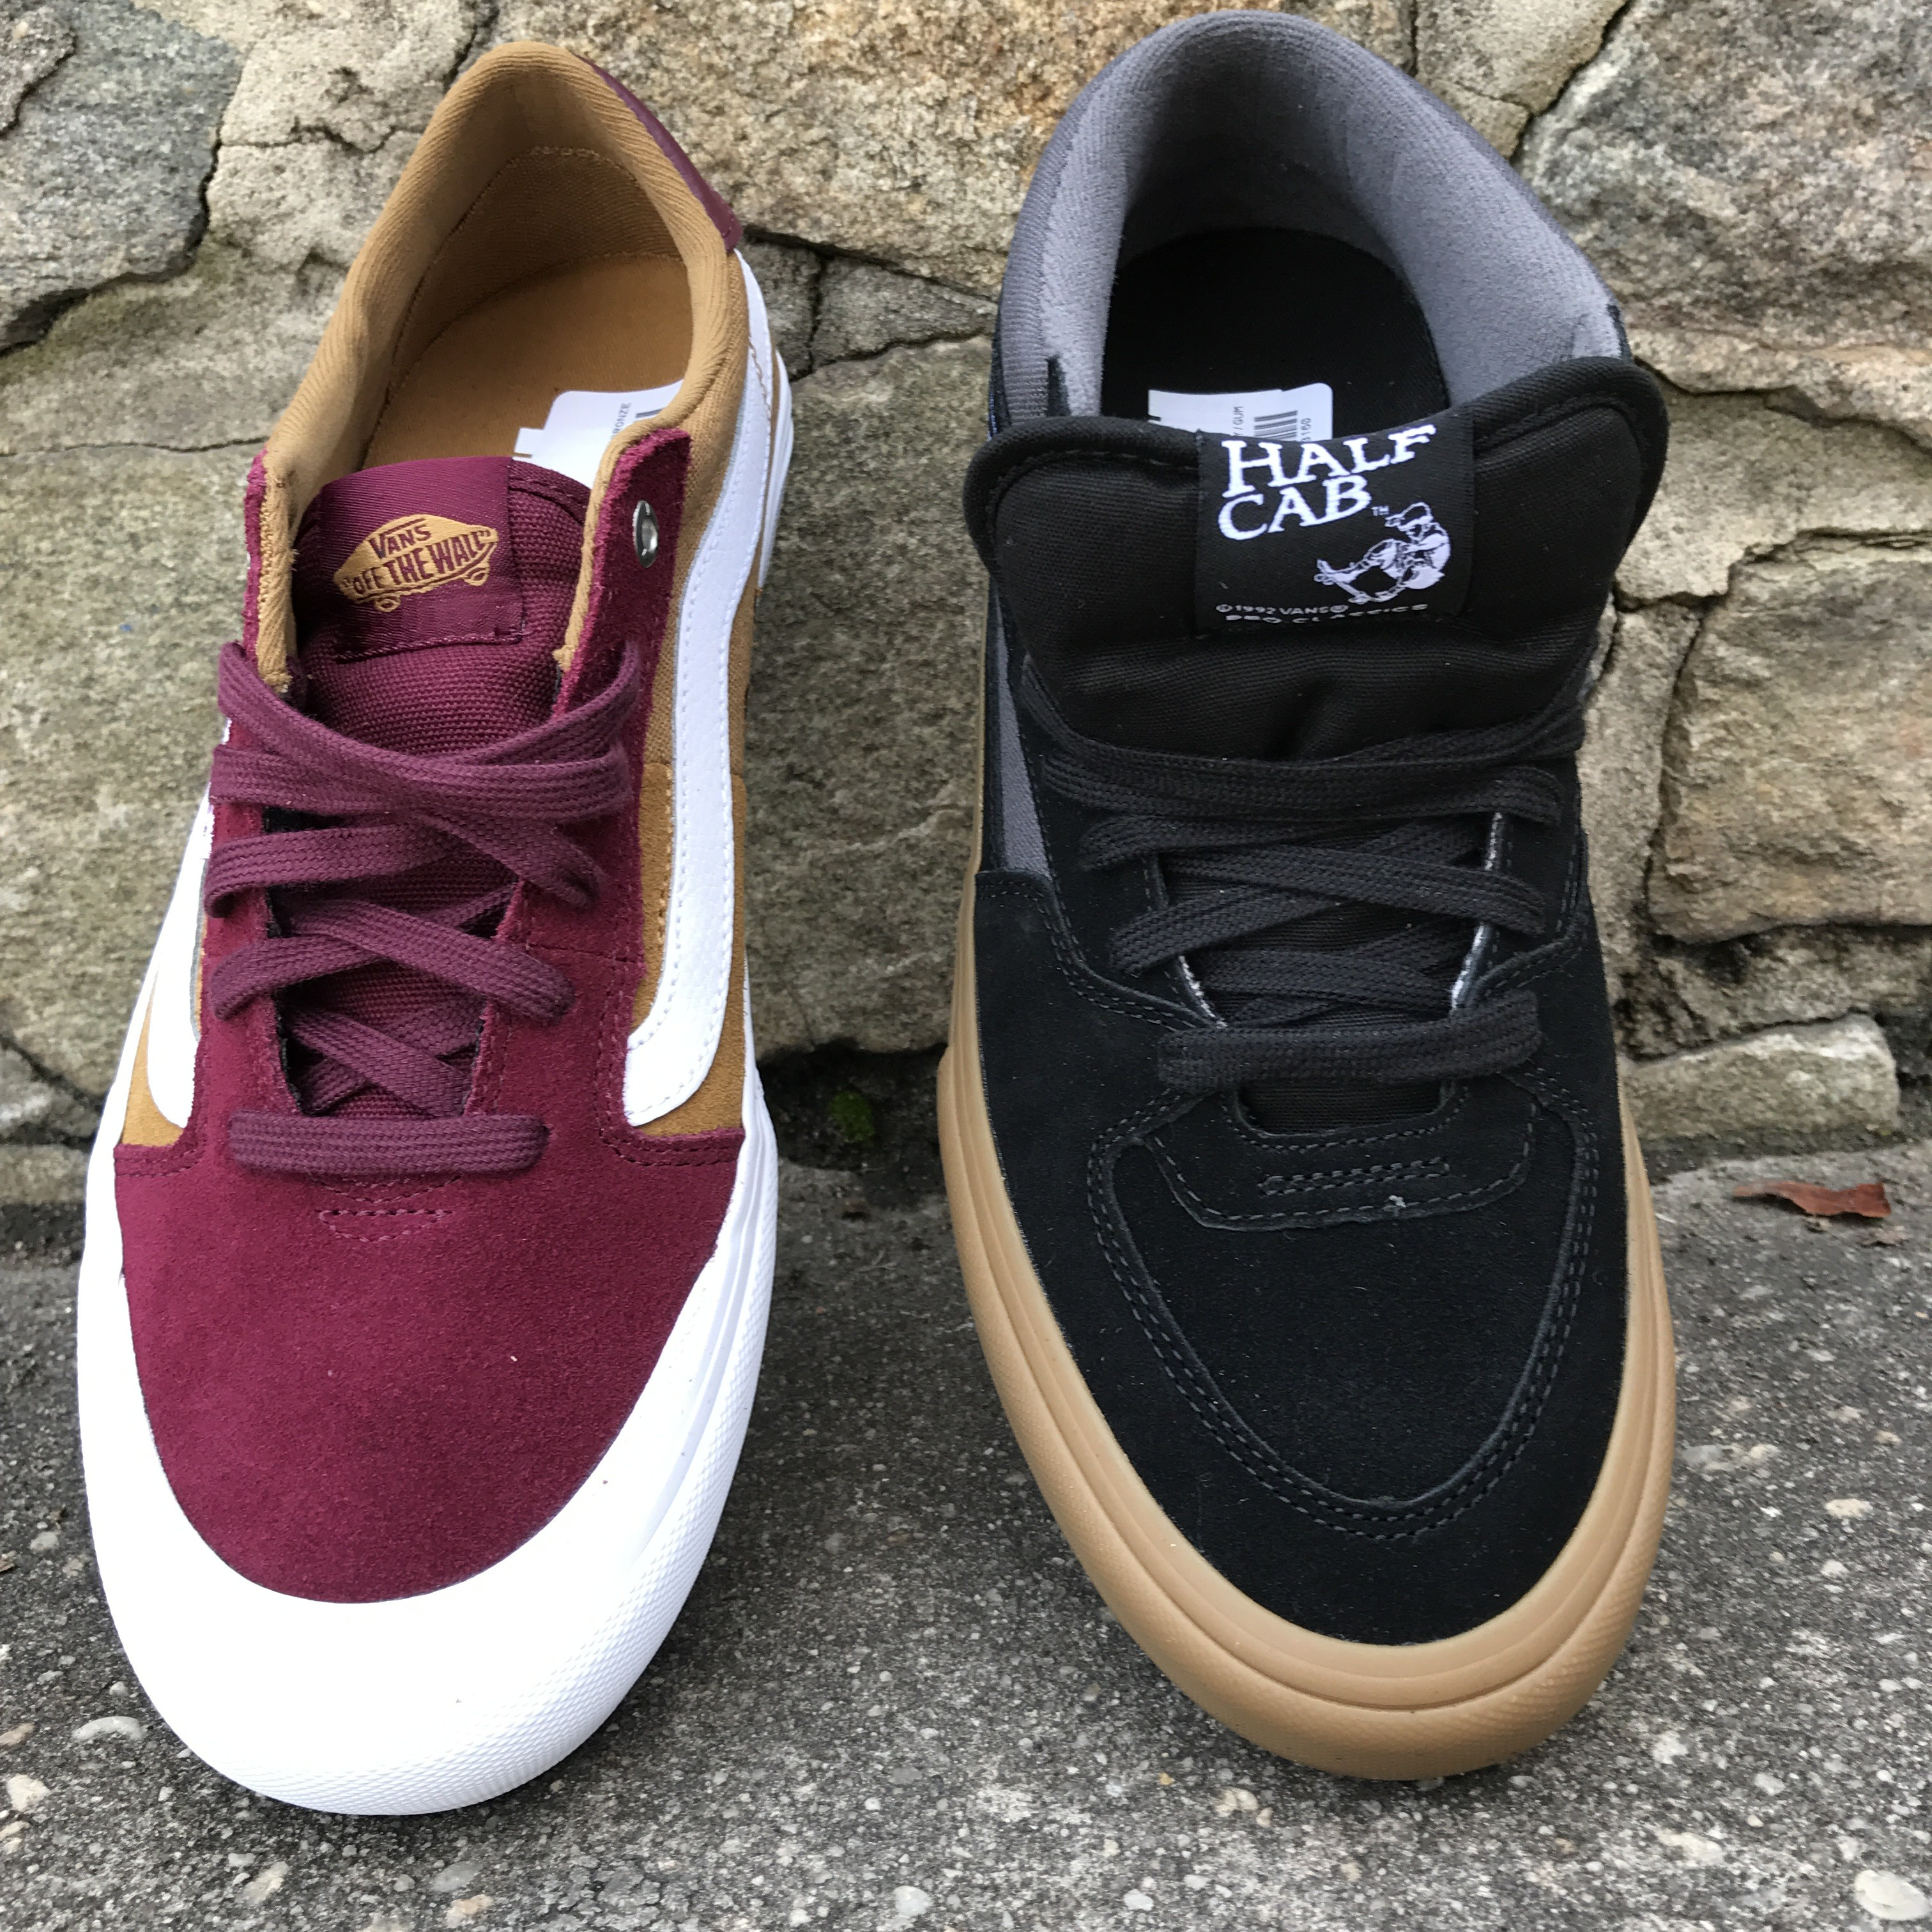 4552e9658ce91f New Vans Half Cab Pro   112 Pro s Just Came In at Both Shop Locations. This  ...